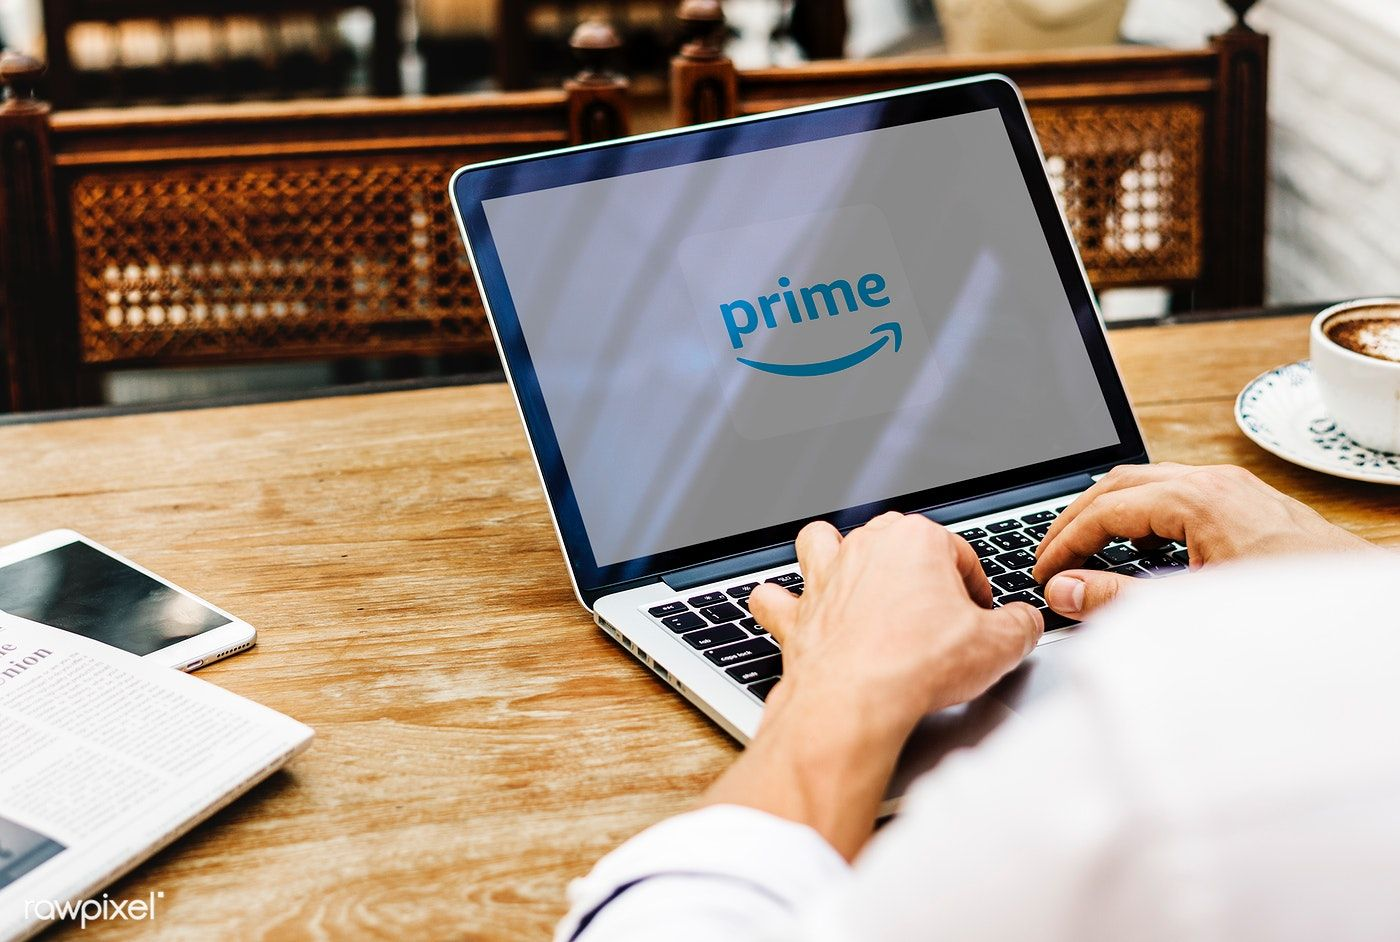 Amazon Prime Video logo showing on a laptop   free image by